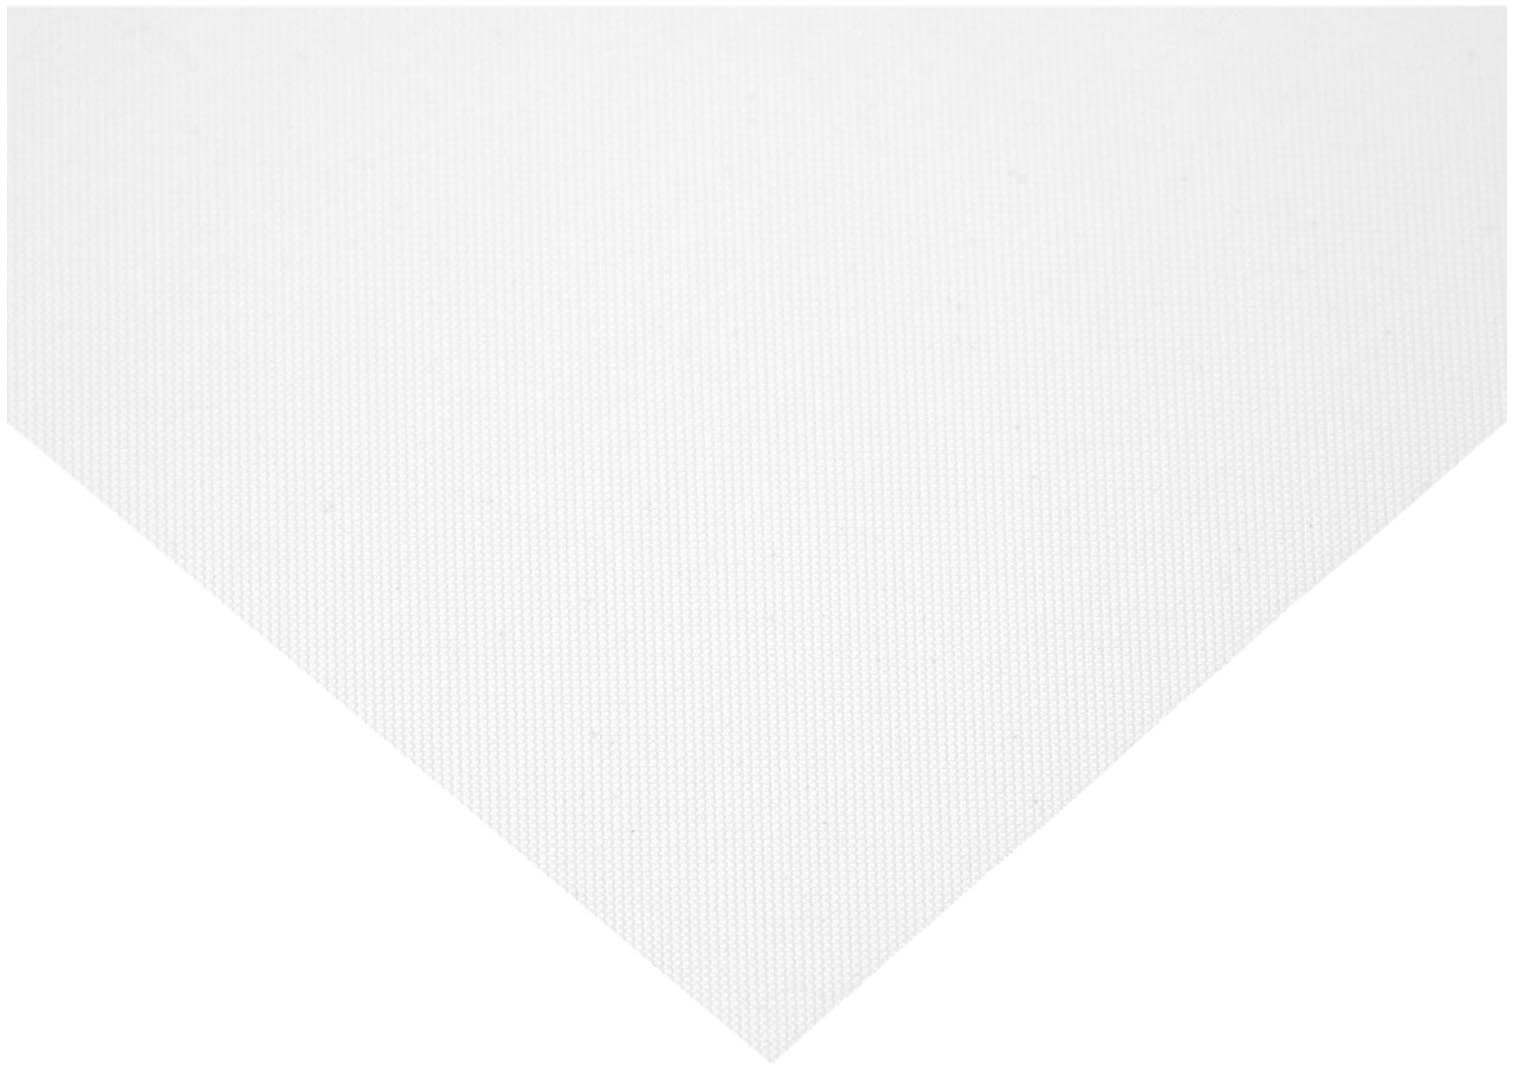 Polyester Mesh Sheet, Opaque Off-White, 12'' Width, 24'' Length, 40 microns Mesh Size, 25% Open Area (Pack of 1)